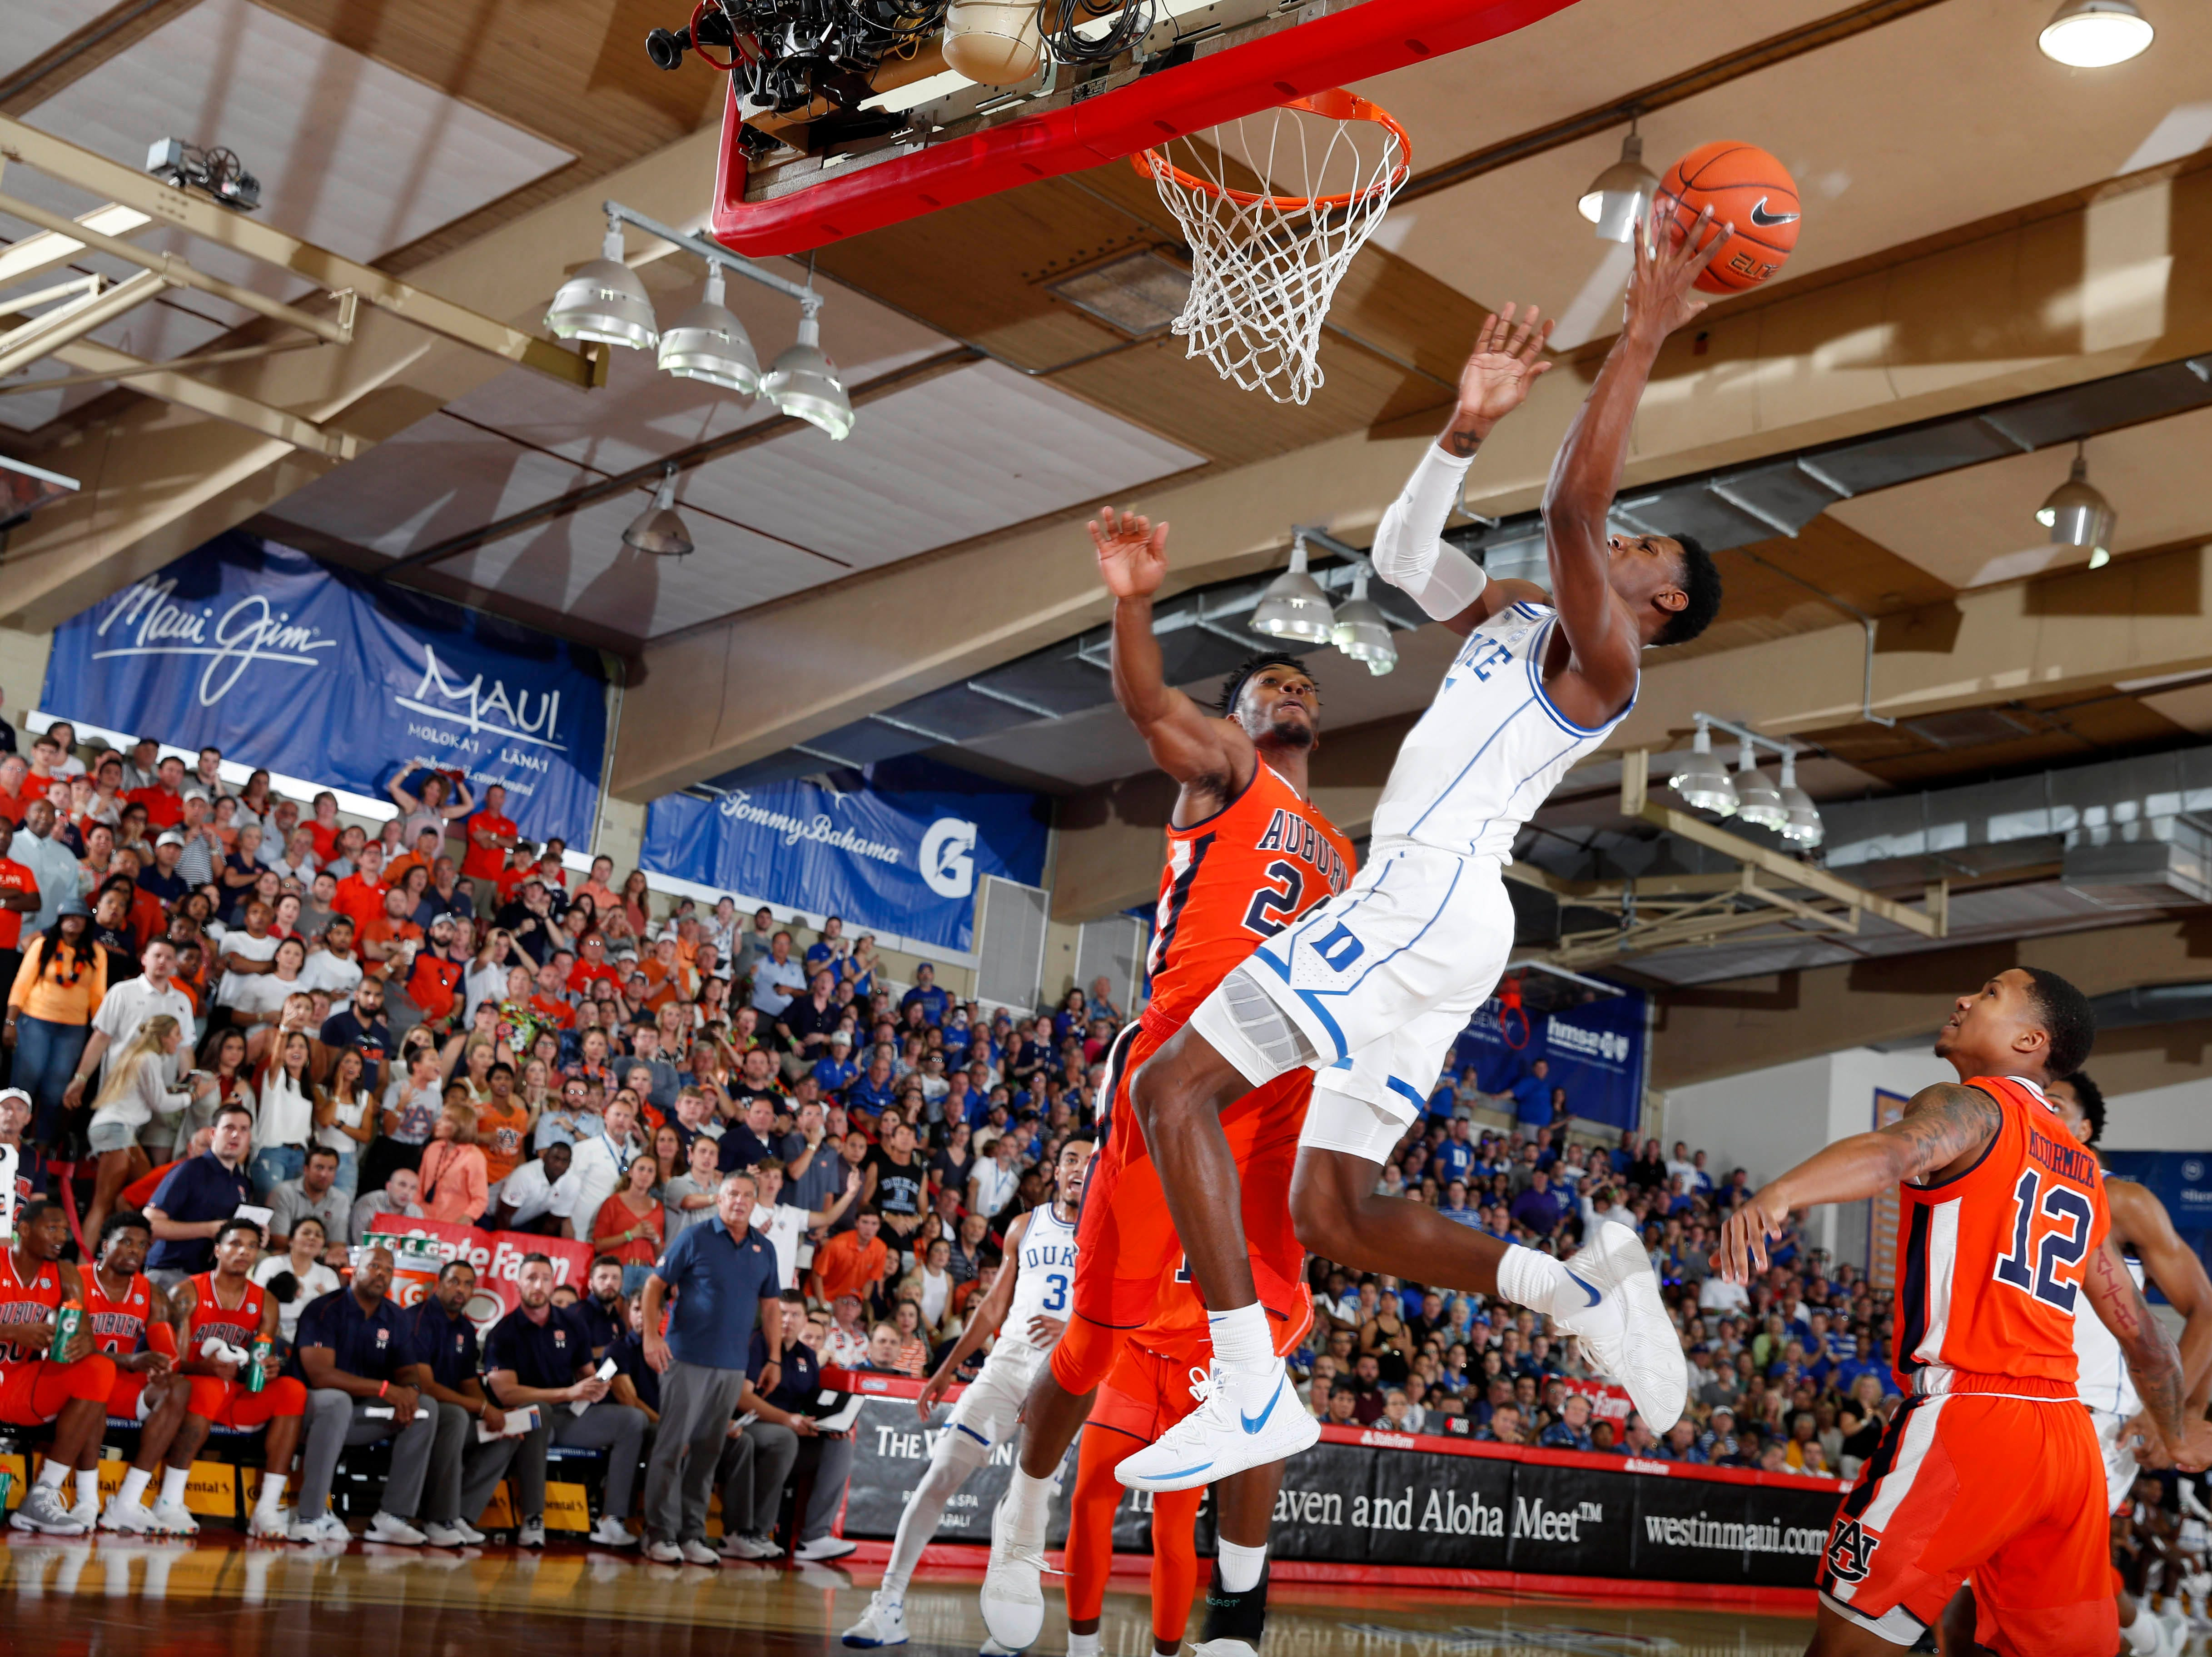 Nov 20, 2018; Lahaina, HI, USA; Duke Blue Devils forward RJ Barrett (5) takes a shot against the Auburn Tigers in the first half during the second round of the Maui Jim Maui Invitational at Lahaina Civic Center. Mandatory Credit: Brian Spurlock-USA TODAY Sports